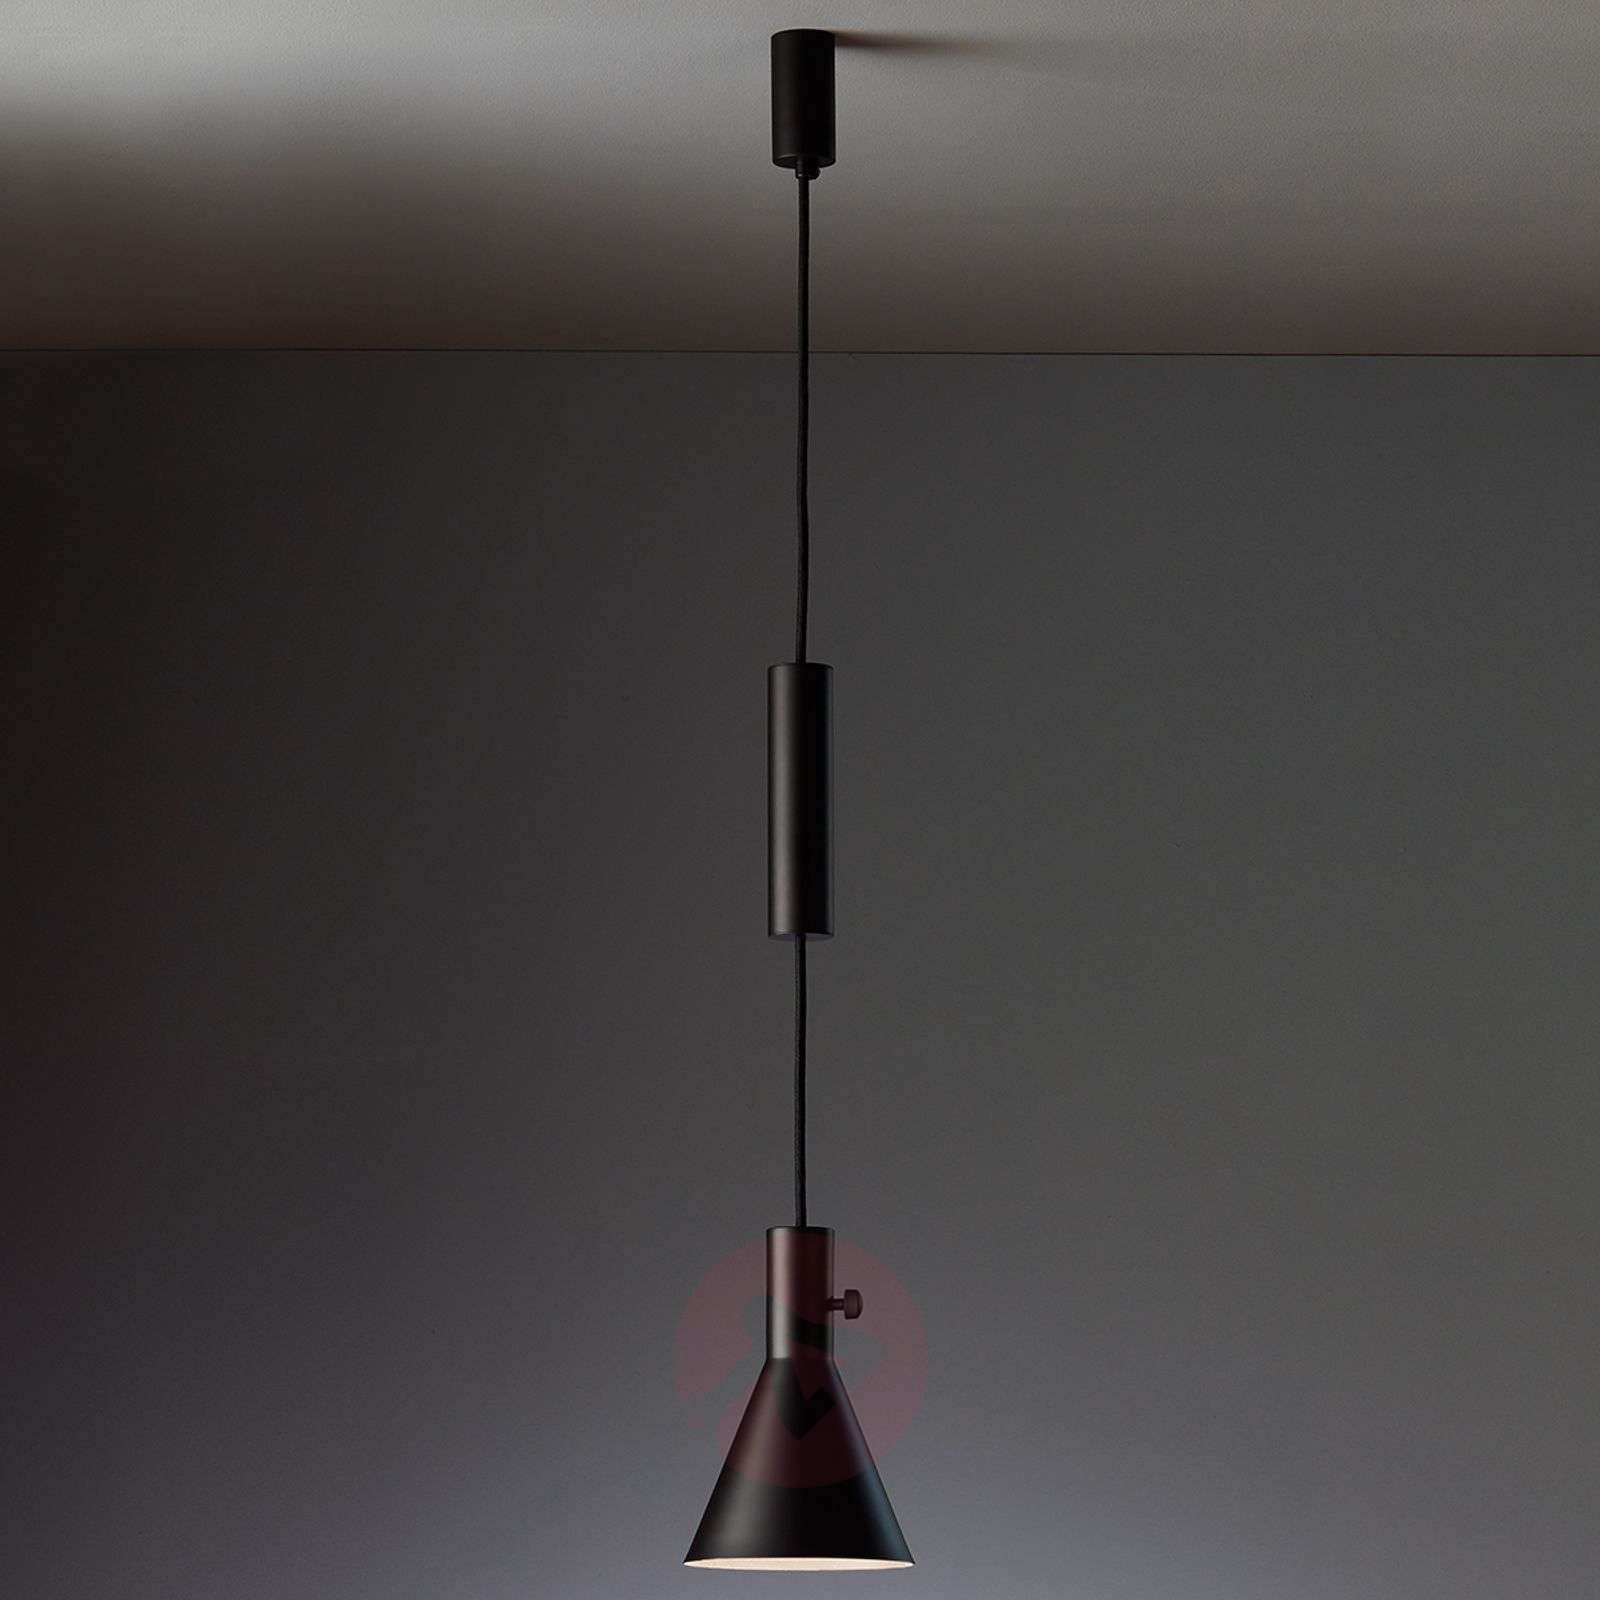 Matt black LED hanging light Eleu-9030217-01